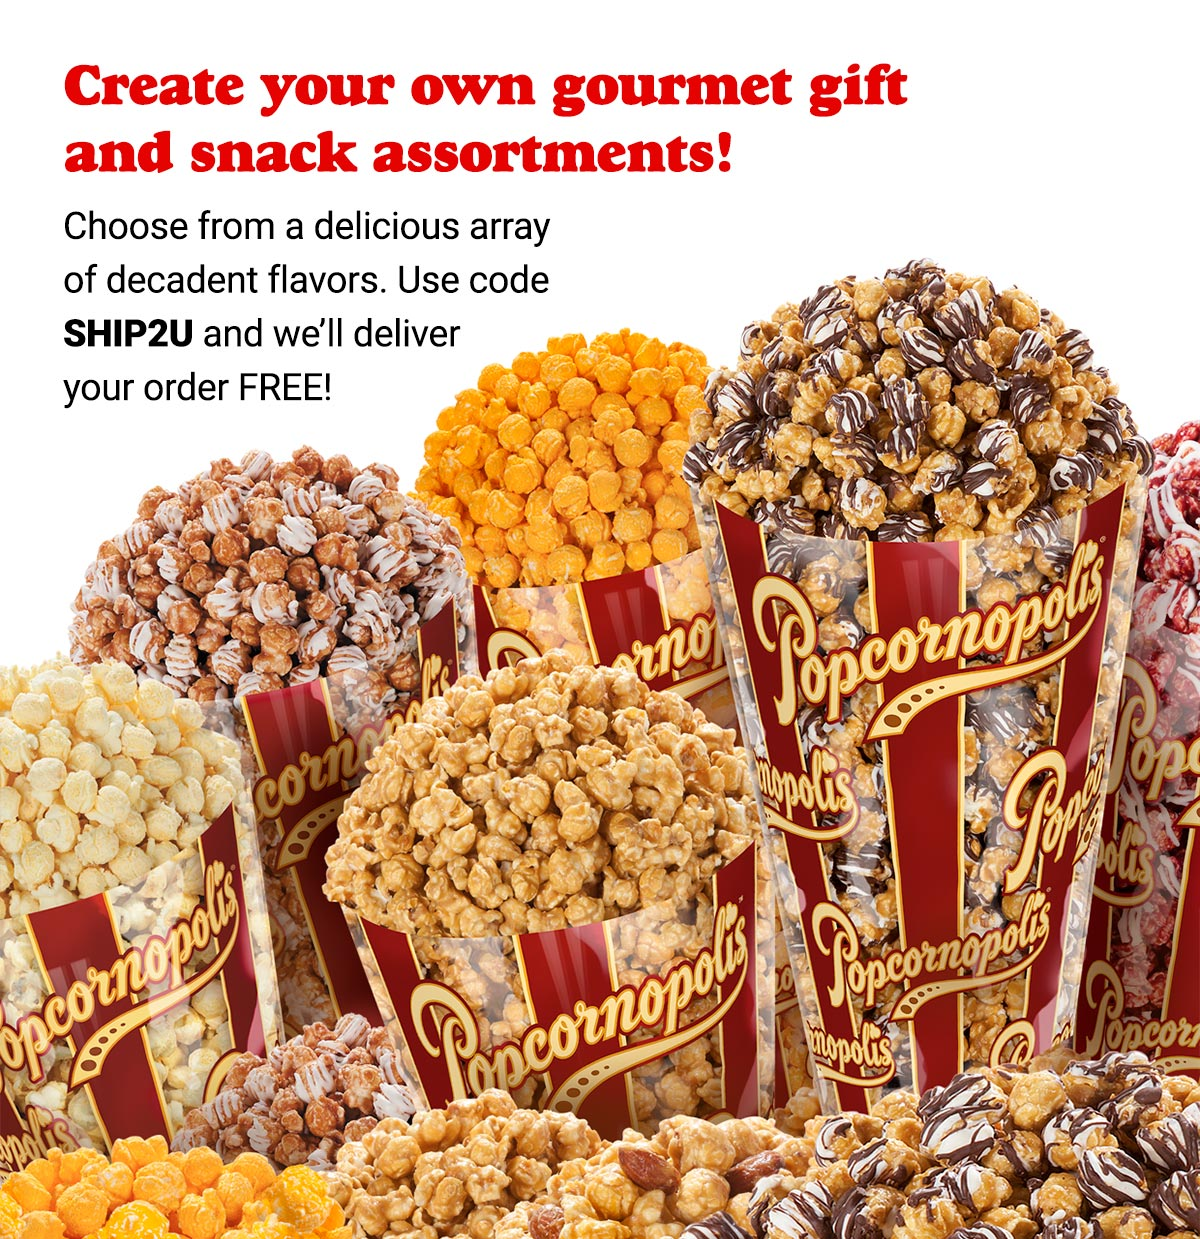 Create Your Own Assortments. Ships FREE!